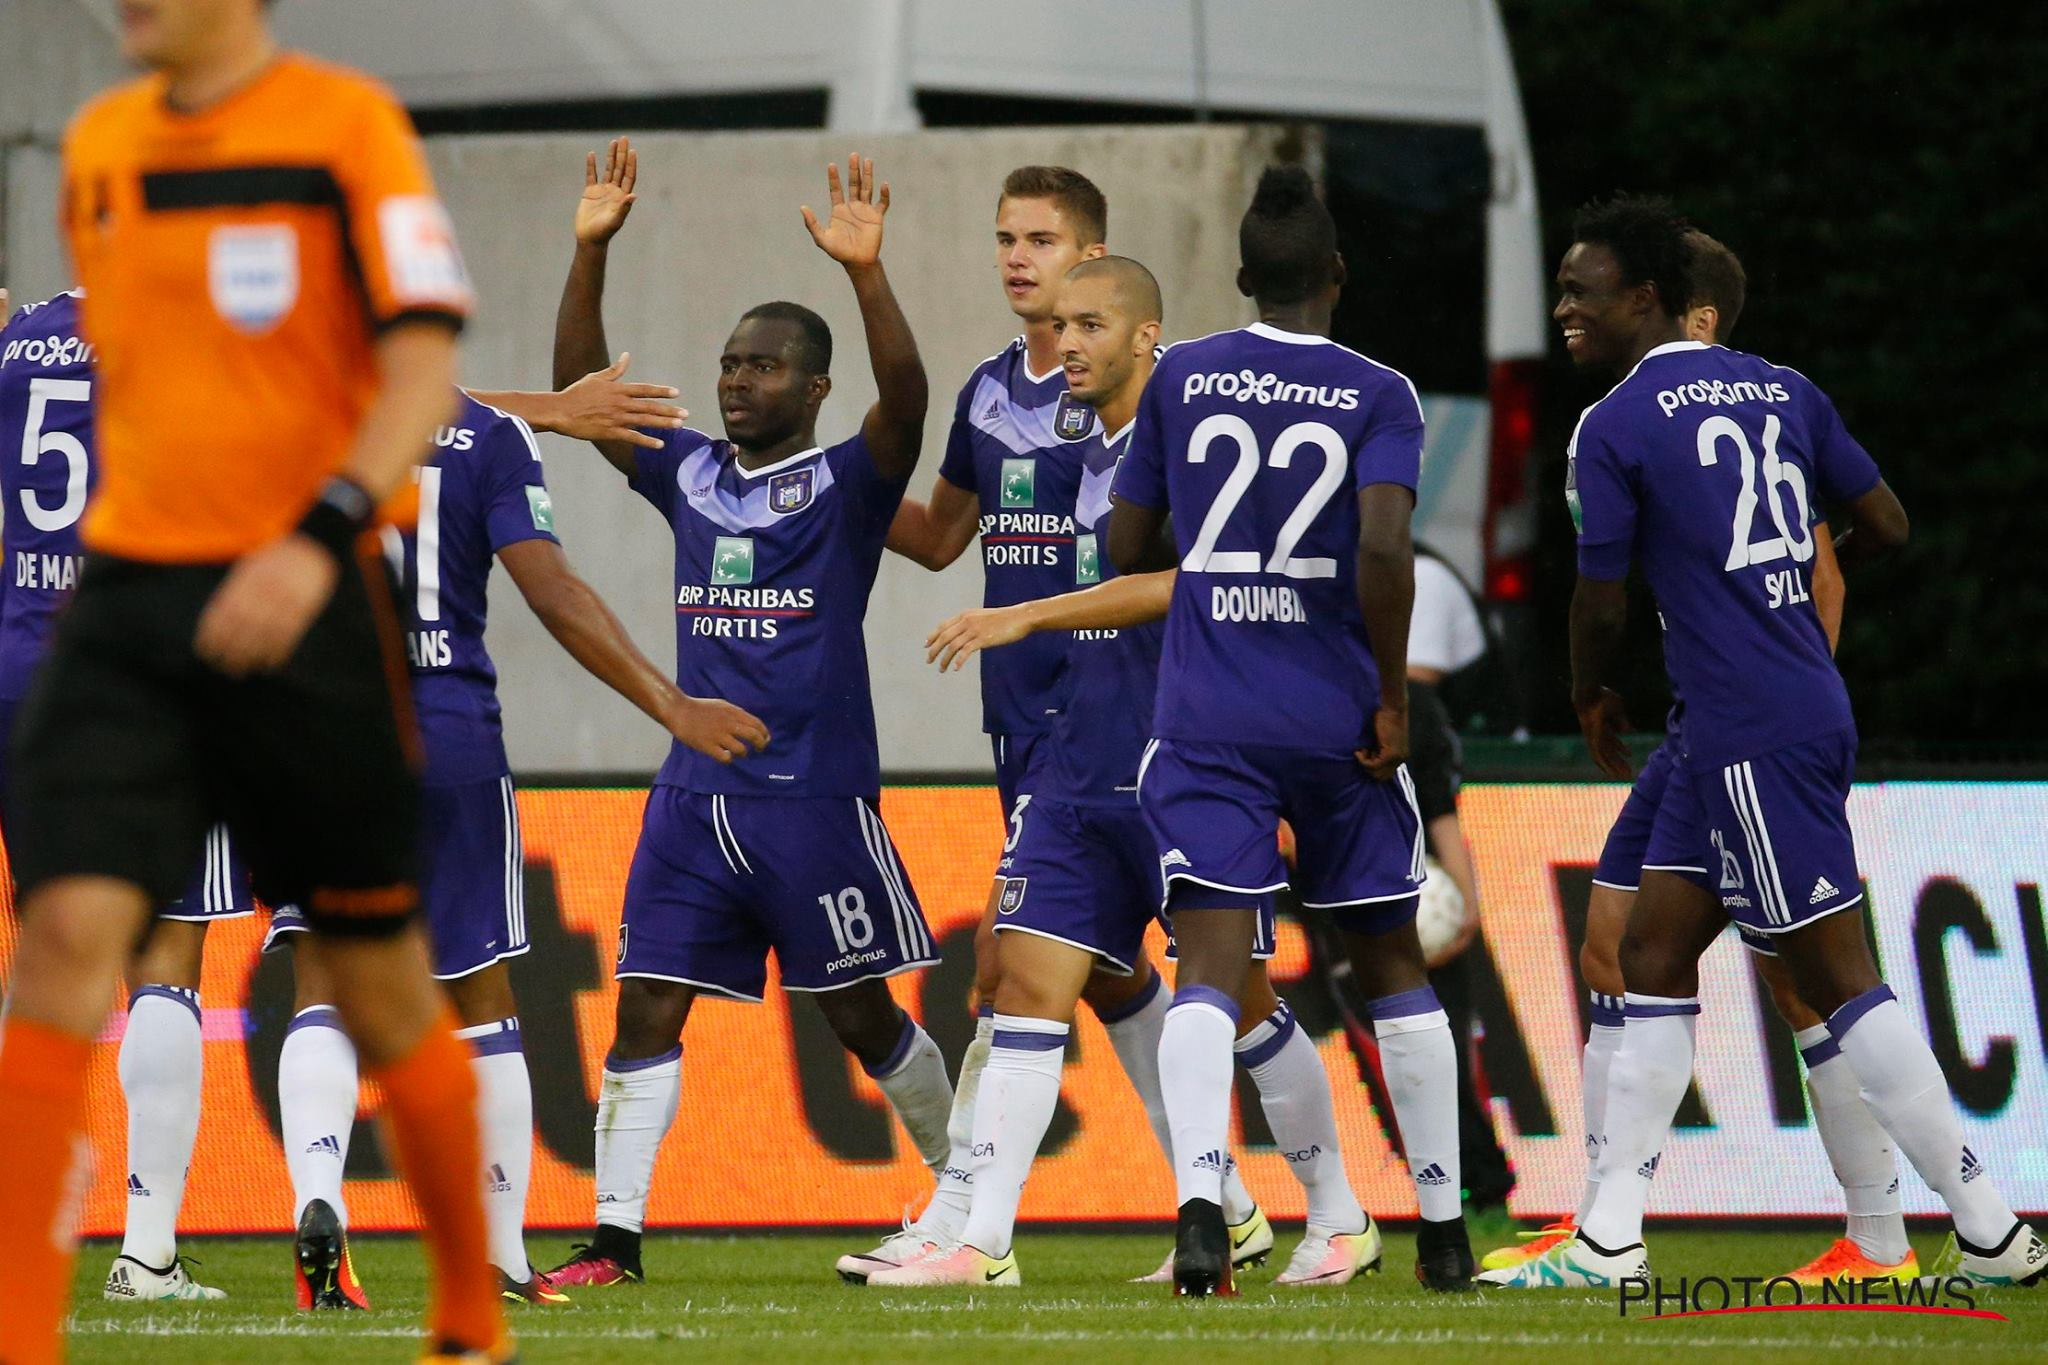 Anderlecht star Frank Acheampong SCORES in league opener but stretchered off